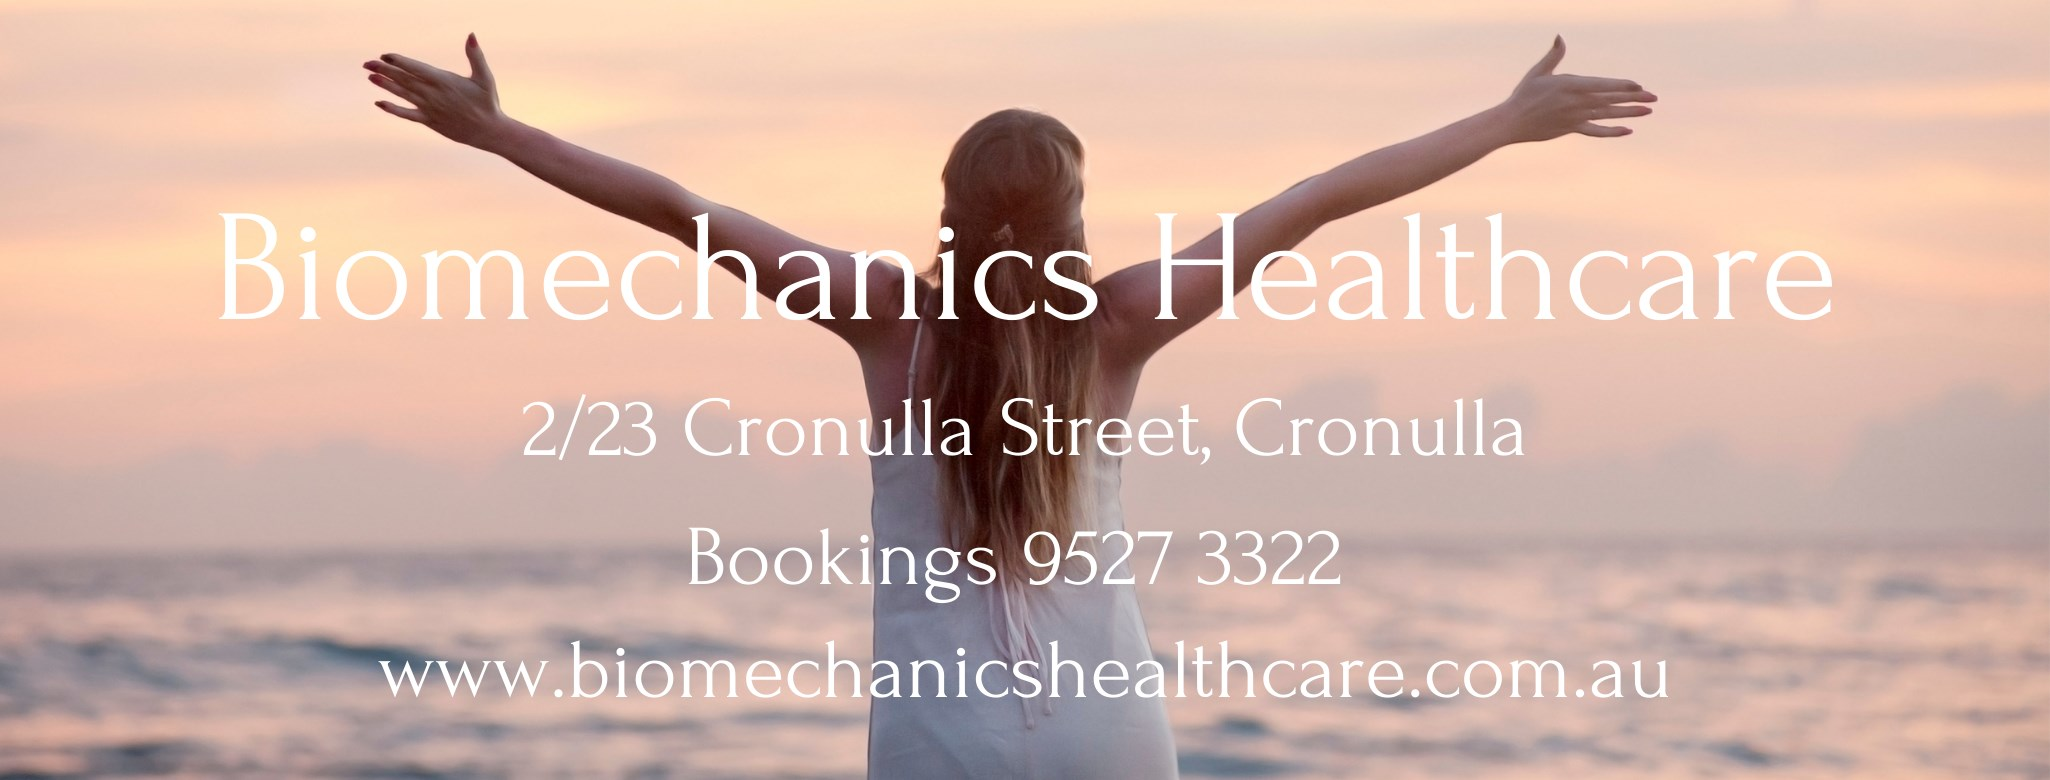 Biomechanics Healthcare Cronulla Staff